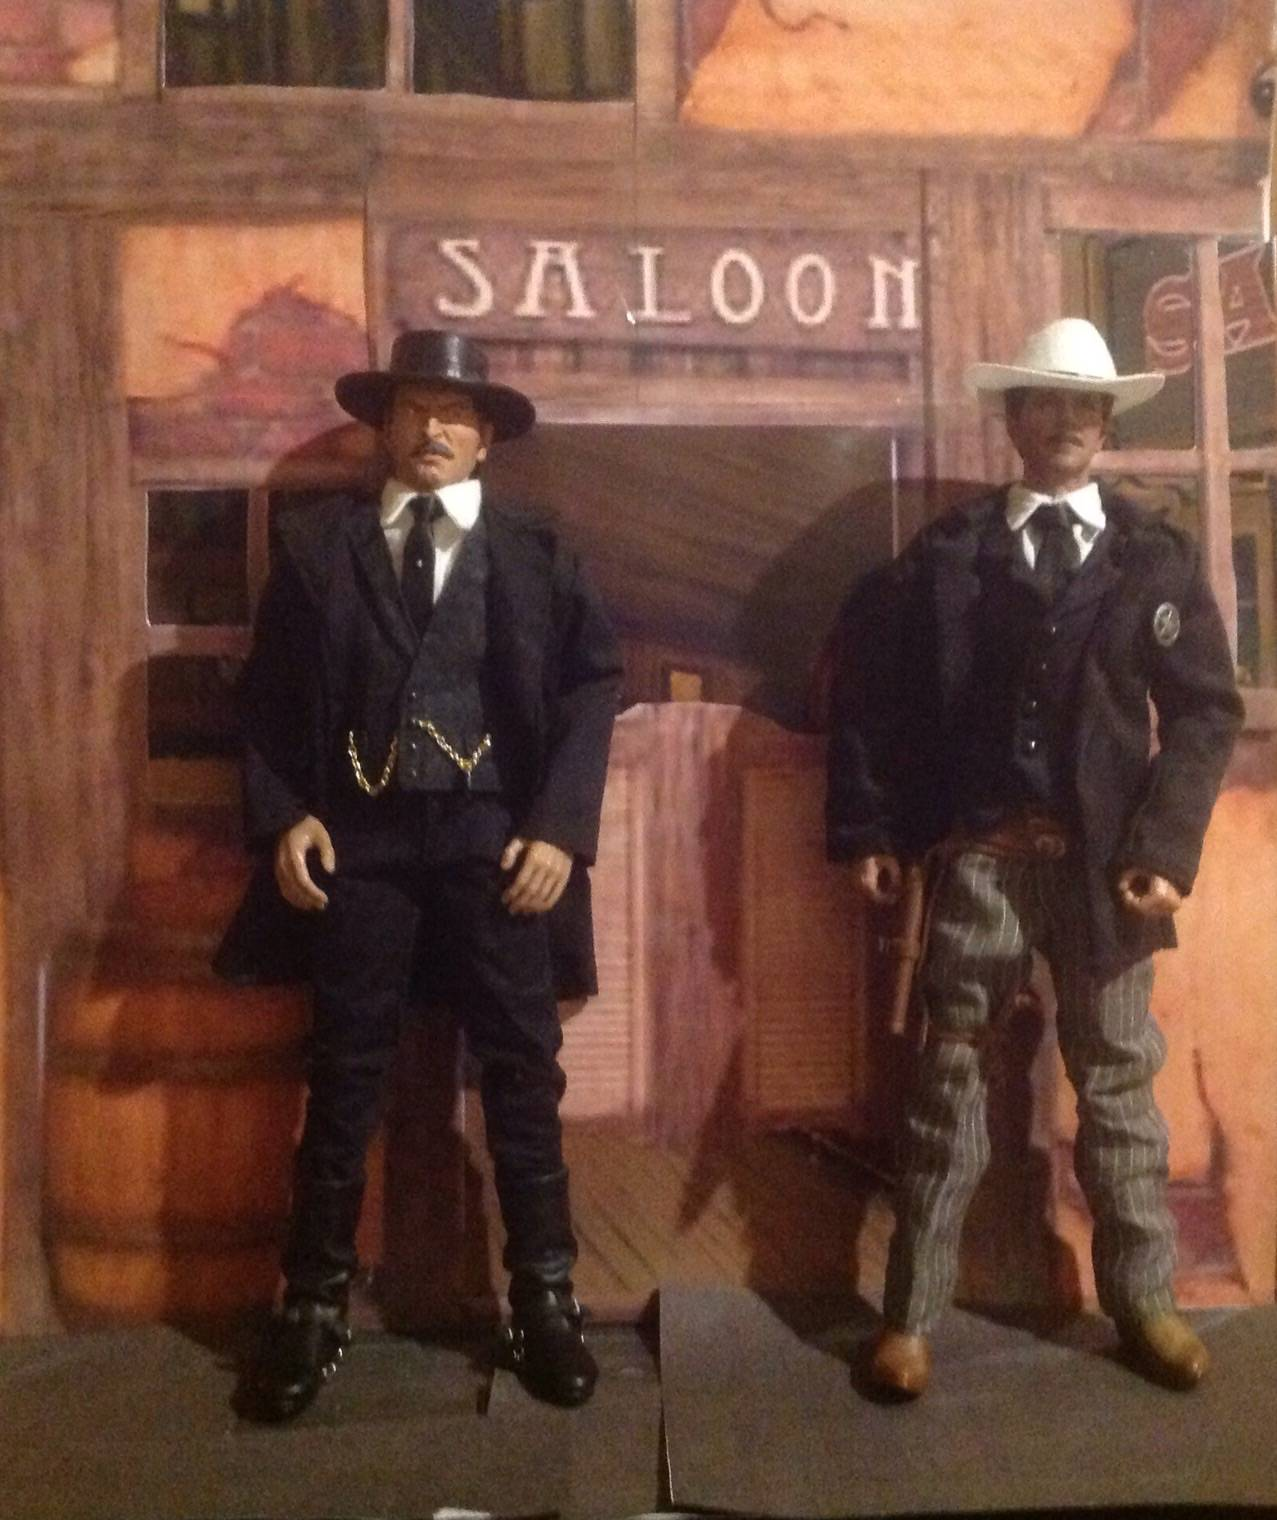 The colonel and the sheriff by W.K.H.